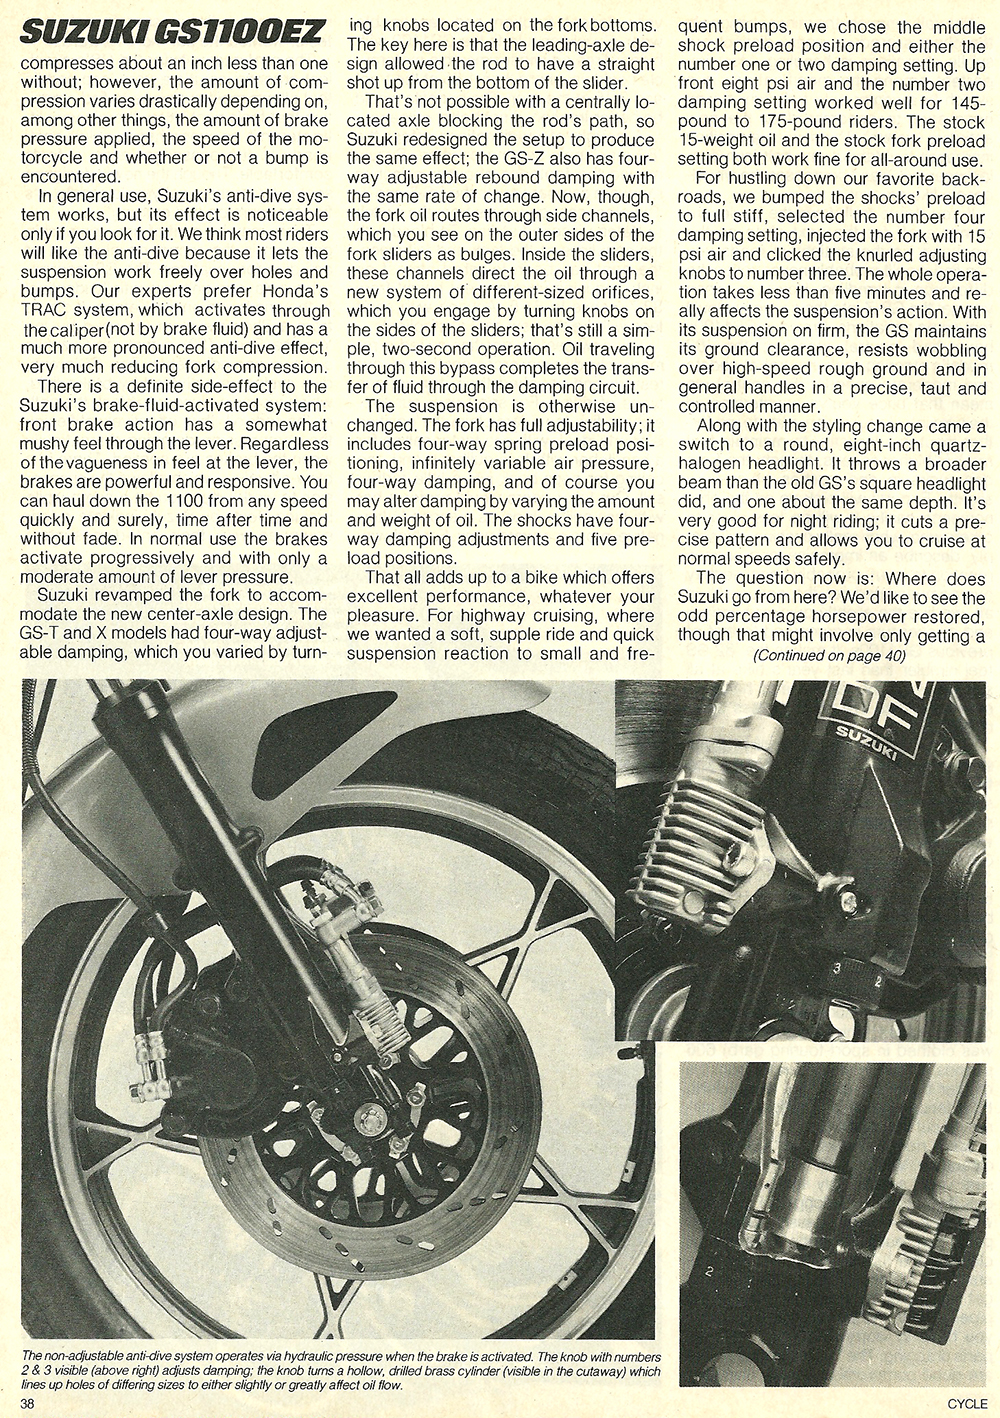 1982 Suzuki GS1100EZ road test 08.jpg